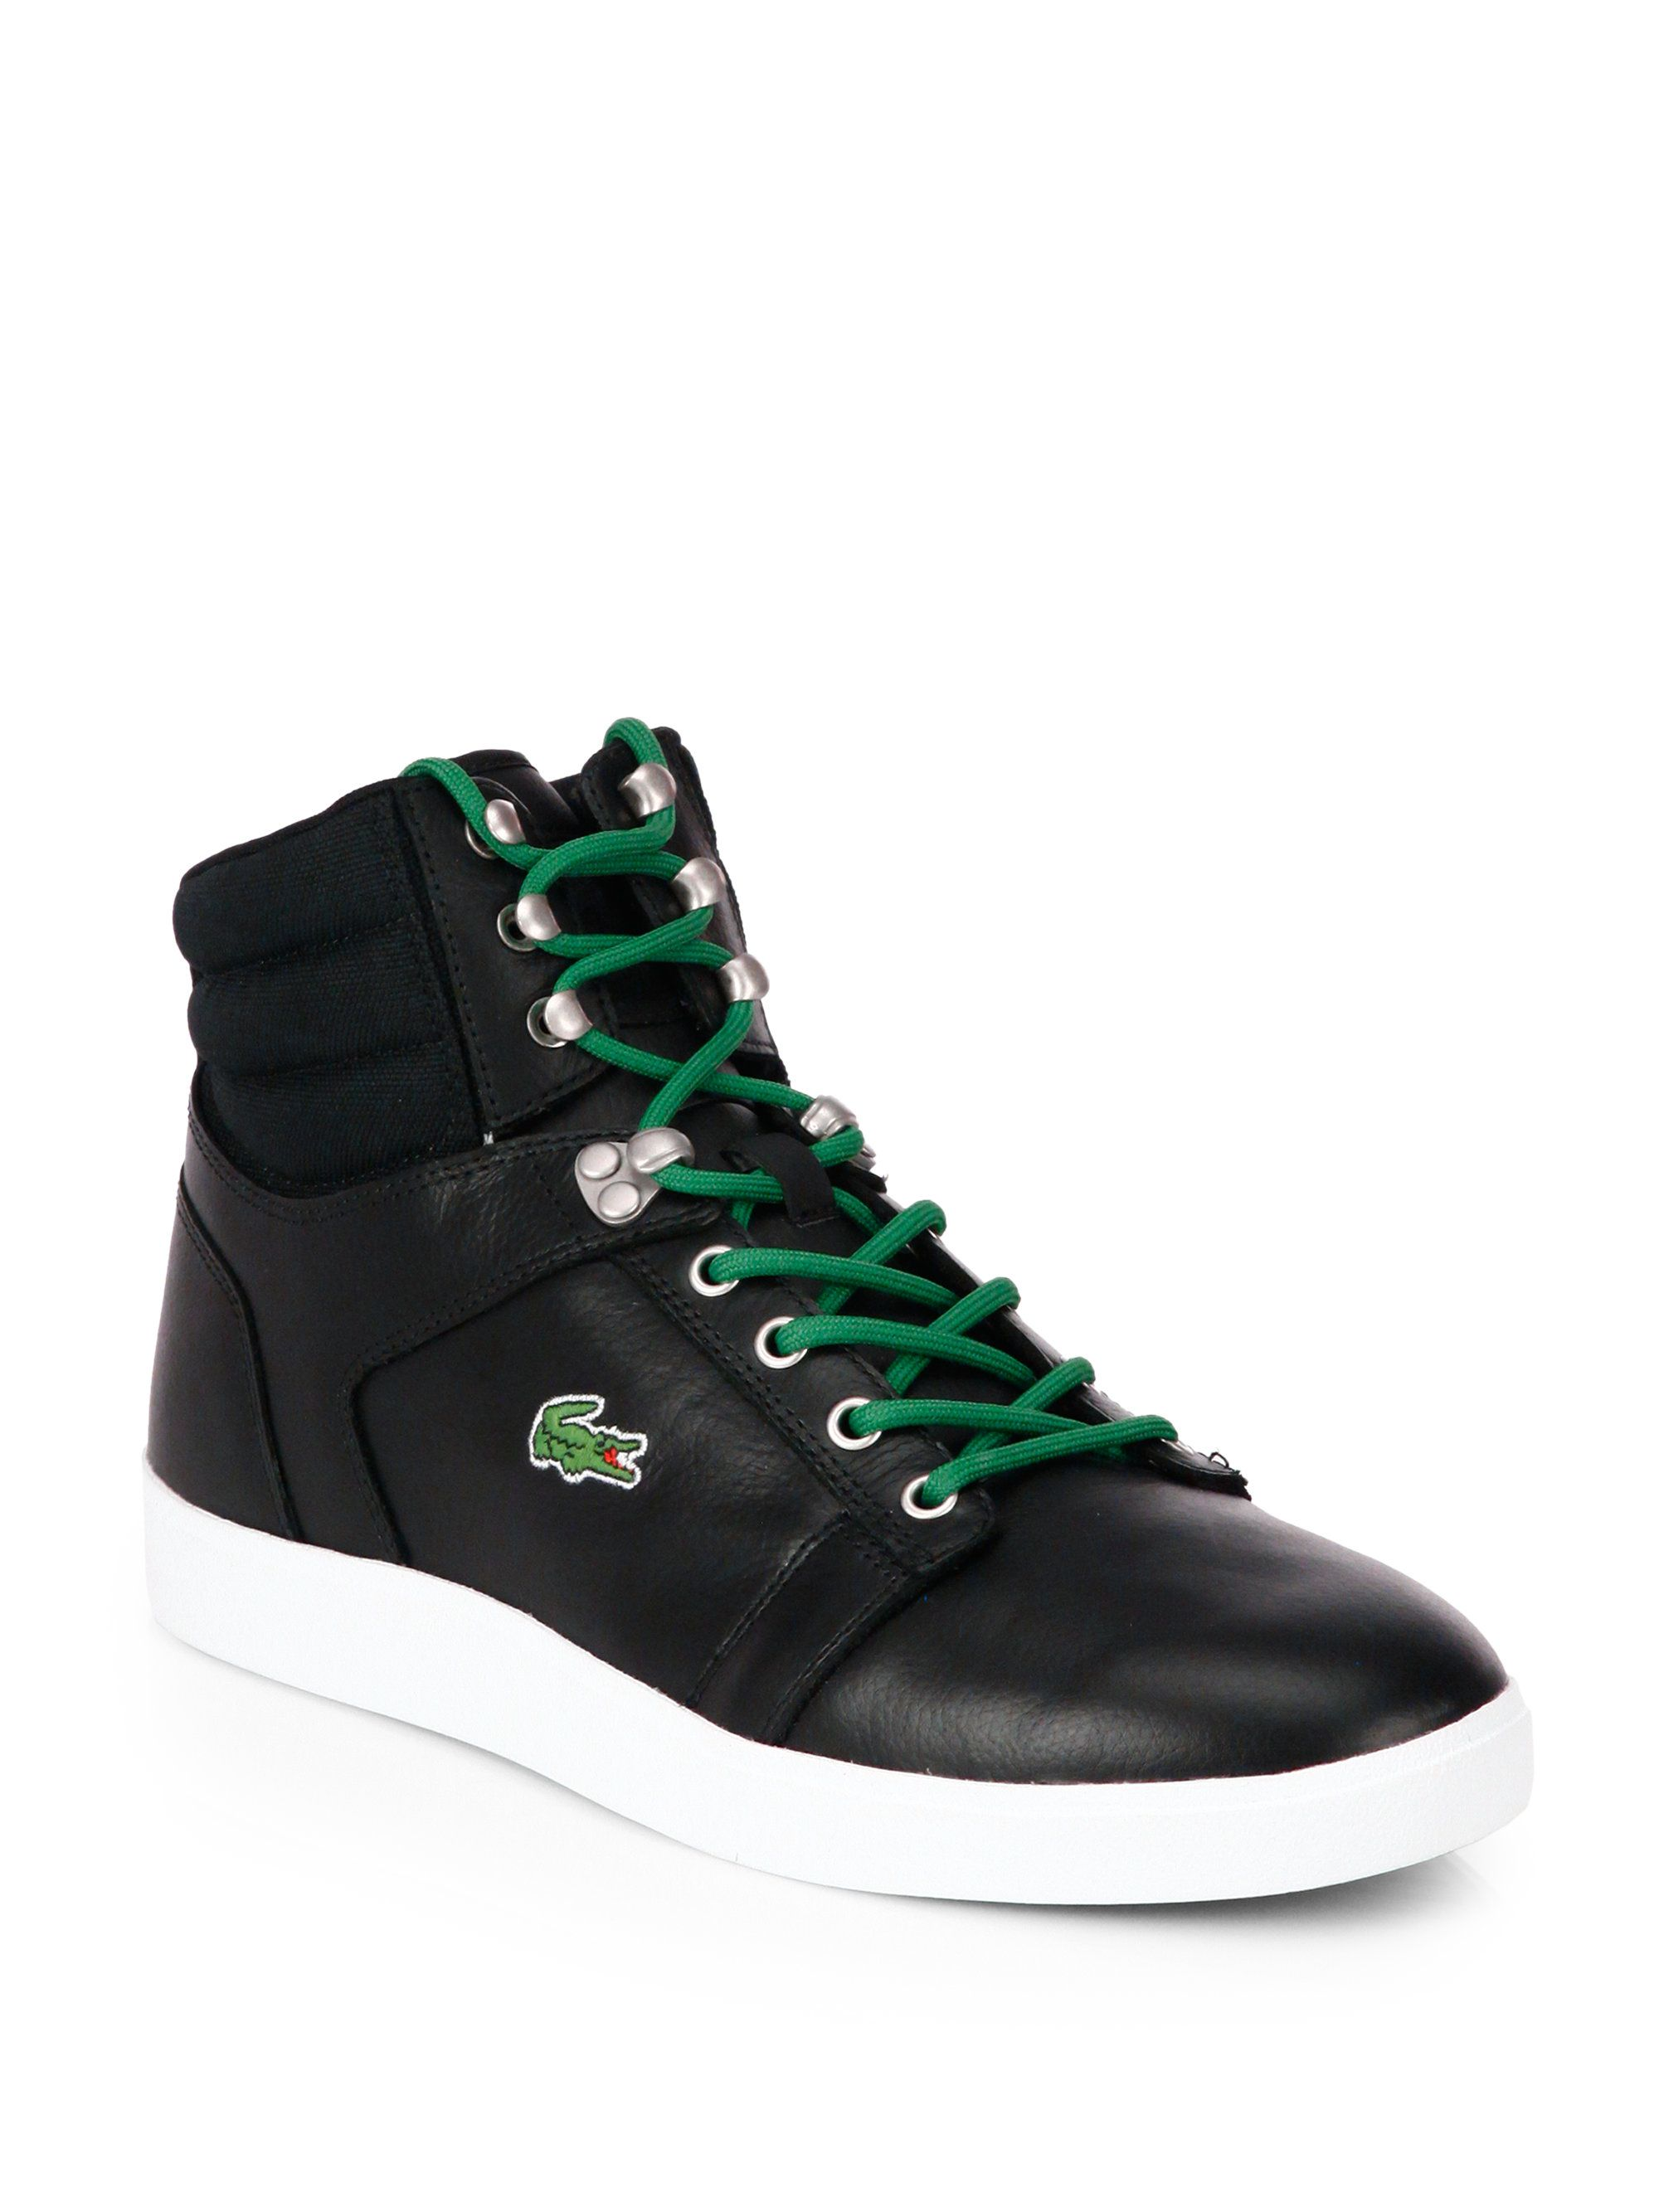 6de3218e9 Lacoste Leather High-Top Sneakers in Black for Men